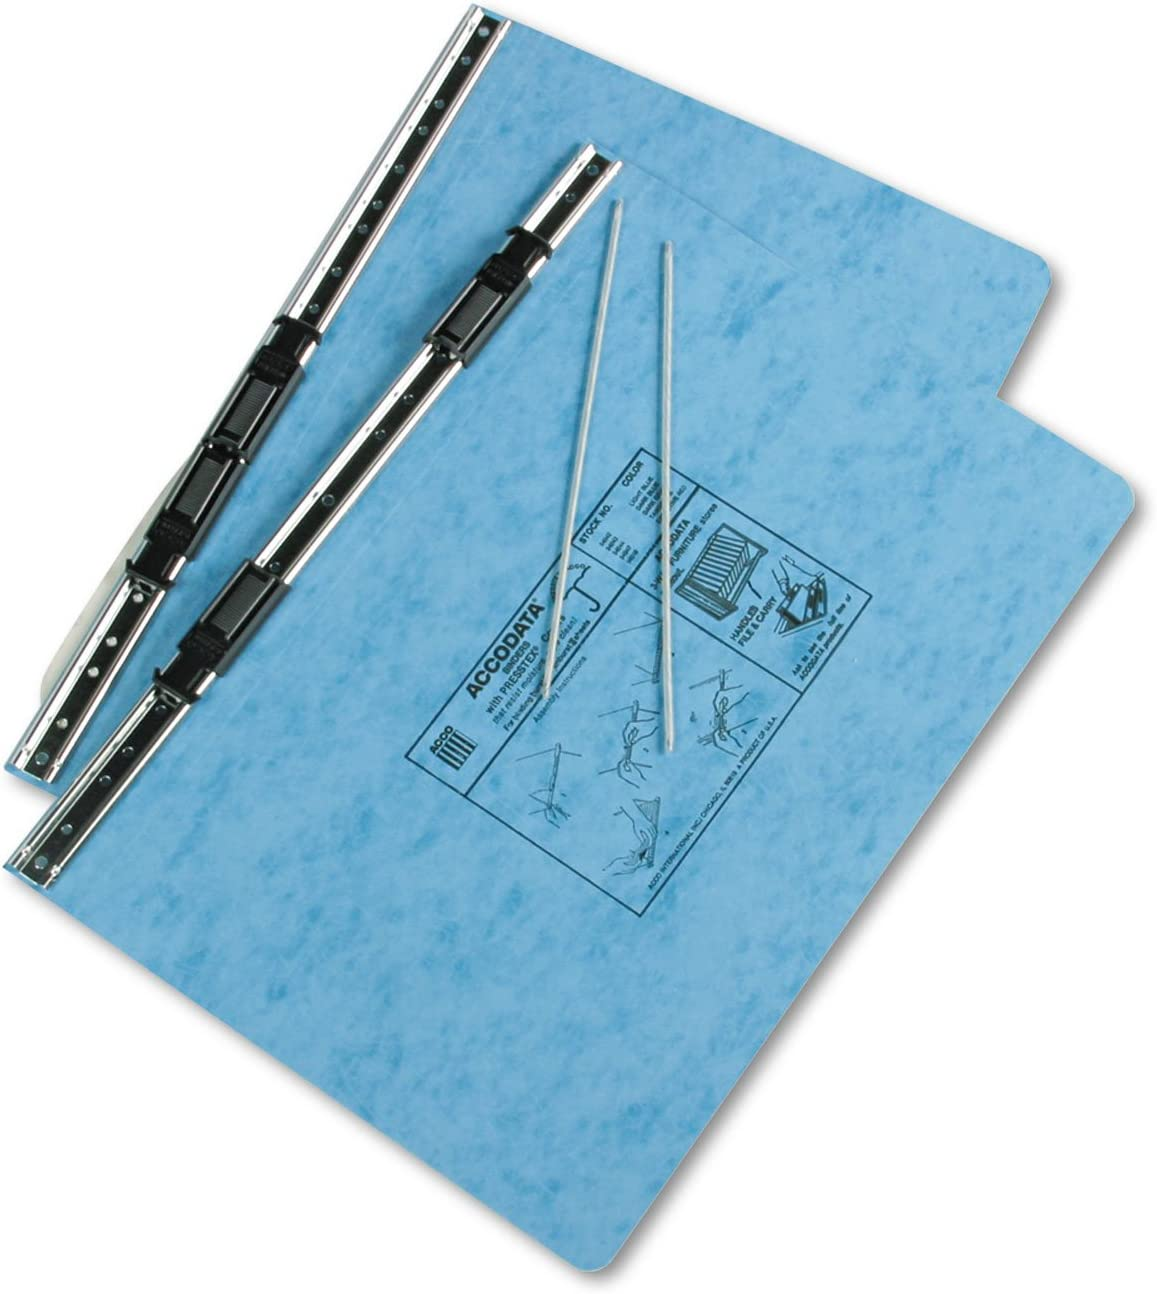 Top and Bottom Loading Binder Expandable for Various Sized Projects. ACCO Light Blue Pressboard Hanging Data Binder 14-7//8 x 8-1//2 Sold As 1 Each